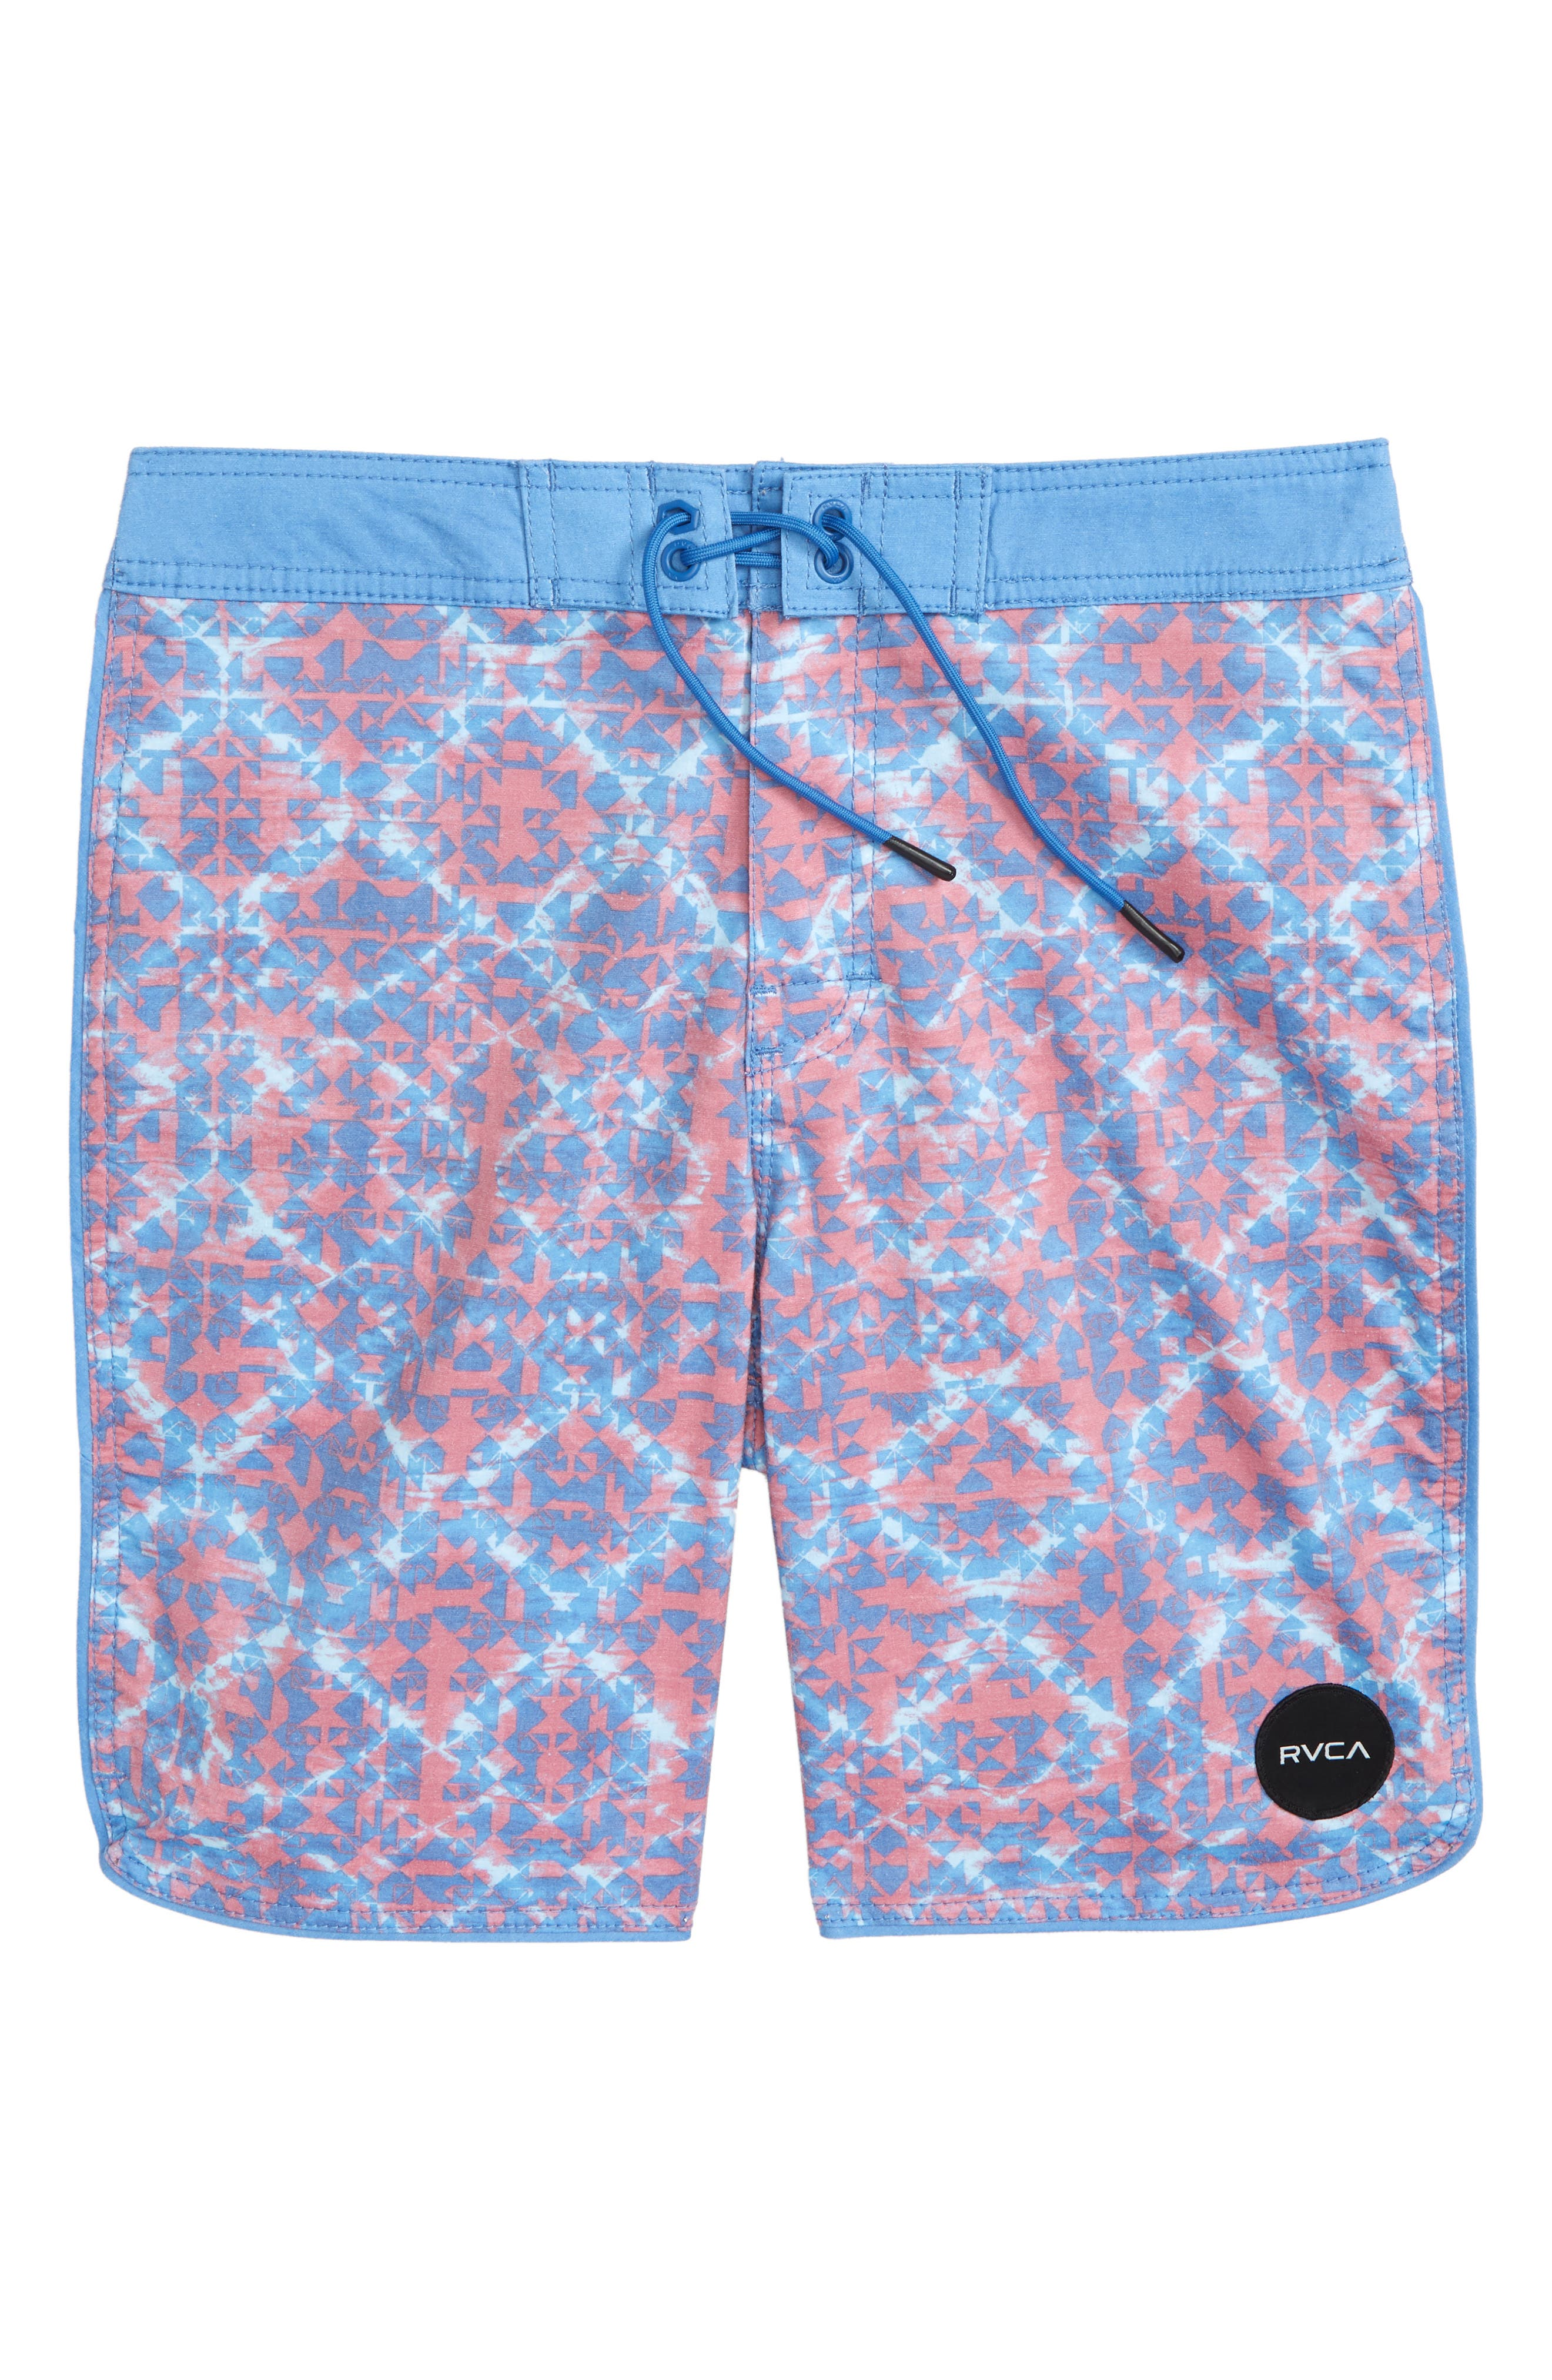 RVCA Sanur Board Shorts (Big Boys)